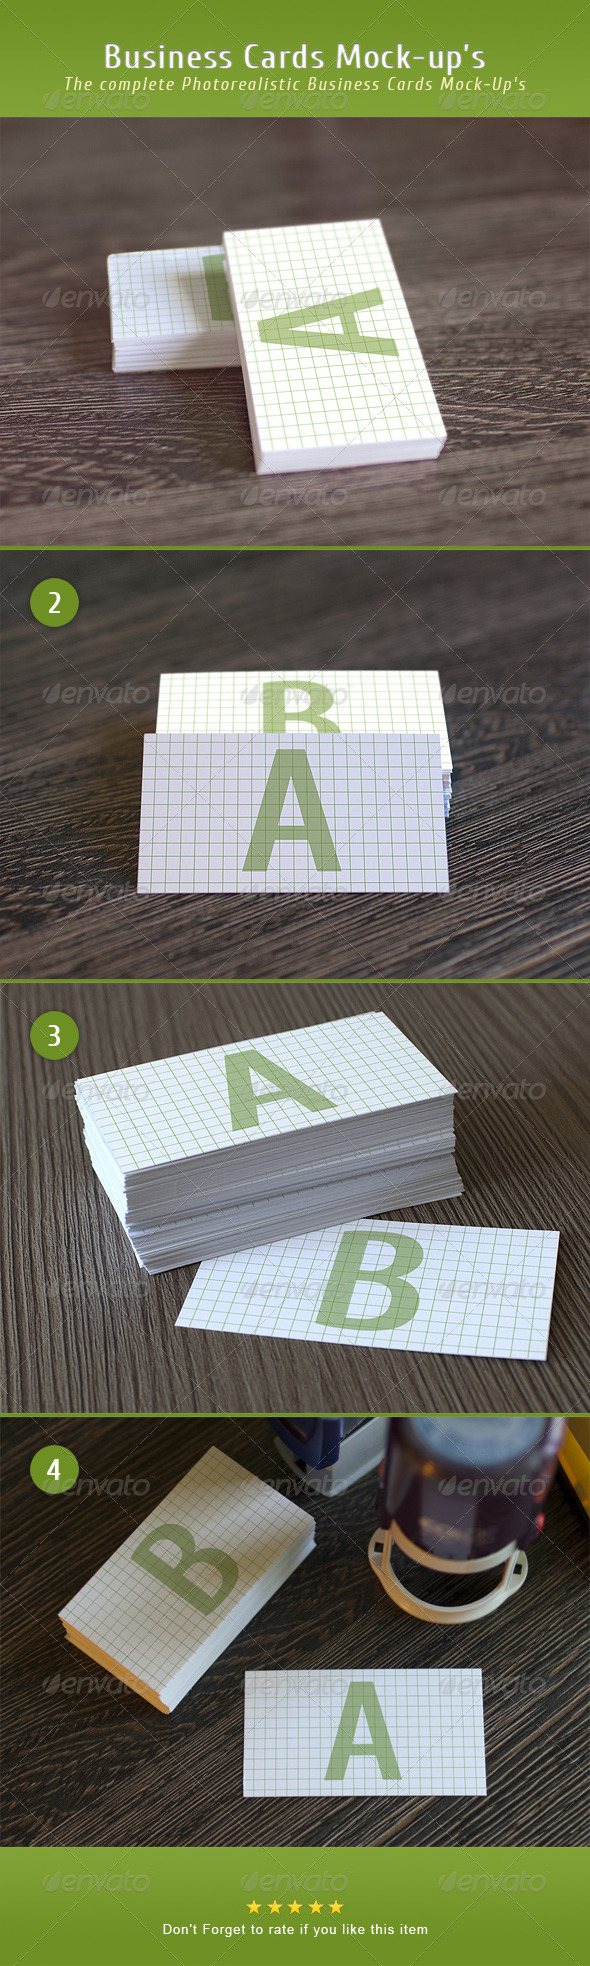 Photorealistic Business Card Mock-Up - Business Cards Print